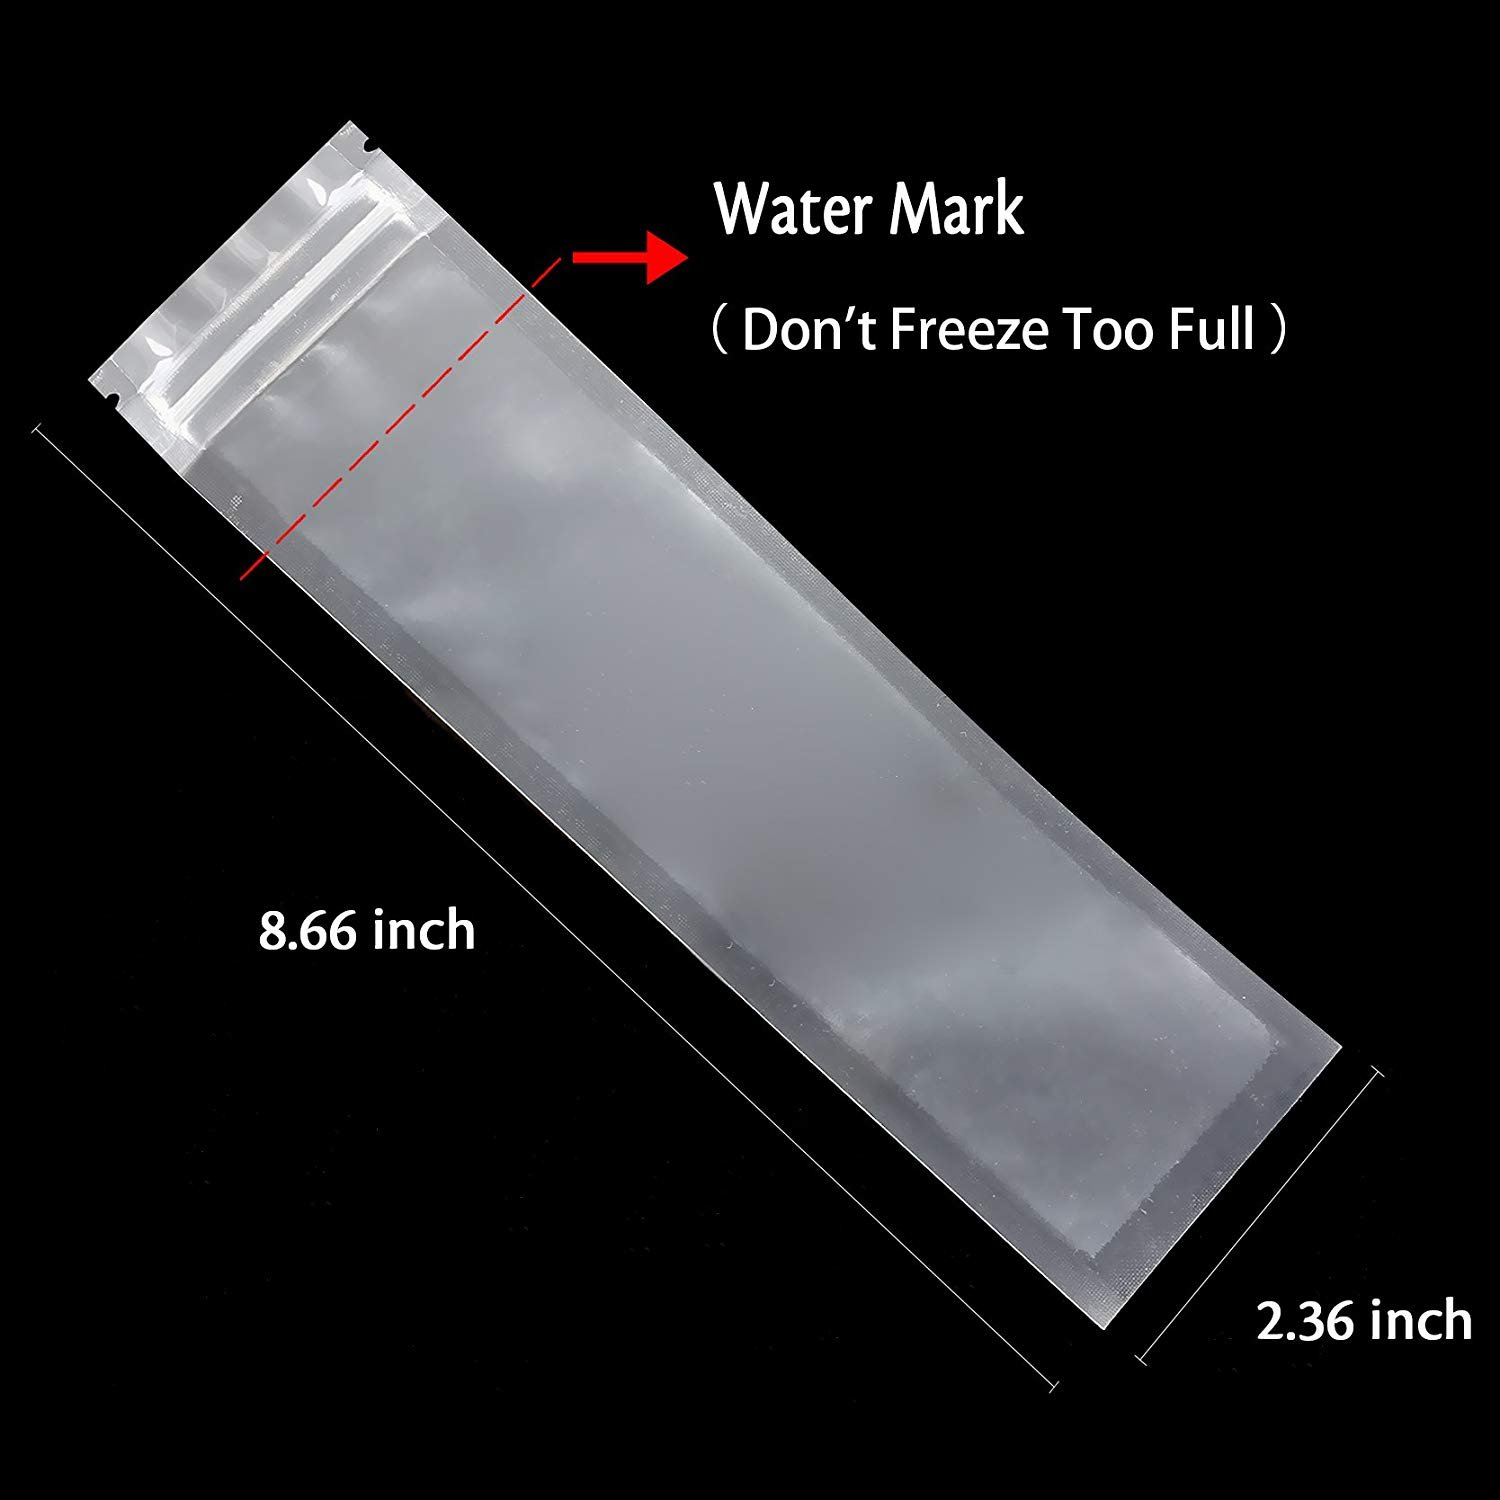 Comes With A Funnel DDD-031-1 Otter Pops or Freeze Pops Ice Candy BPA Free and FDA Approved Popsicle Bags Maker Disposable DIY Ice Pop Mold Bags for Gogurt Ozera 150 Pack Popsicle Molds Bags